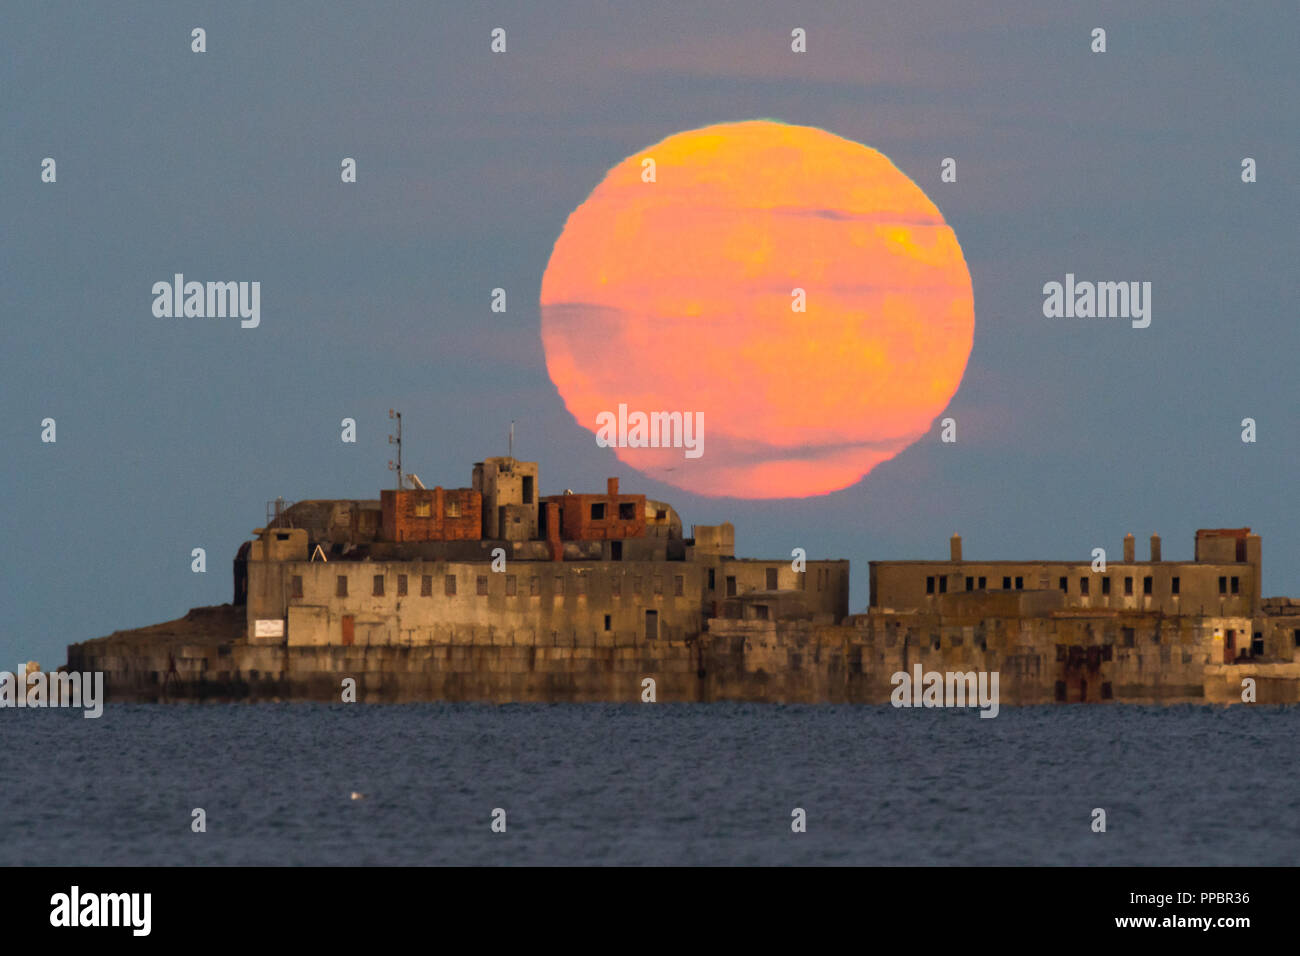 Weymouth, Dorset, UK.  24th September 2018.  UK Weather.  The Harvest Moon rises up from behind the historic 19th century Portland Breakwater Fort on the outer breakwater of Portland Harbour in Dorset.  The now derelict fort also known as Chequered Fort was constructed between 1868 and 1878 and is Grade II listed.  Picture Credit: Graham Hunt/Alamy Live News - Stock Image